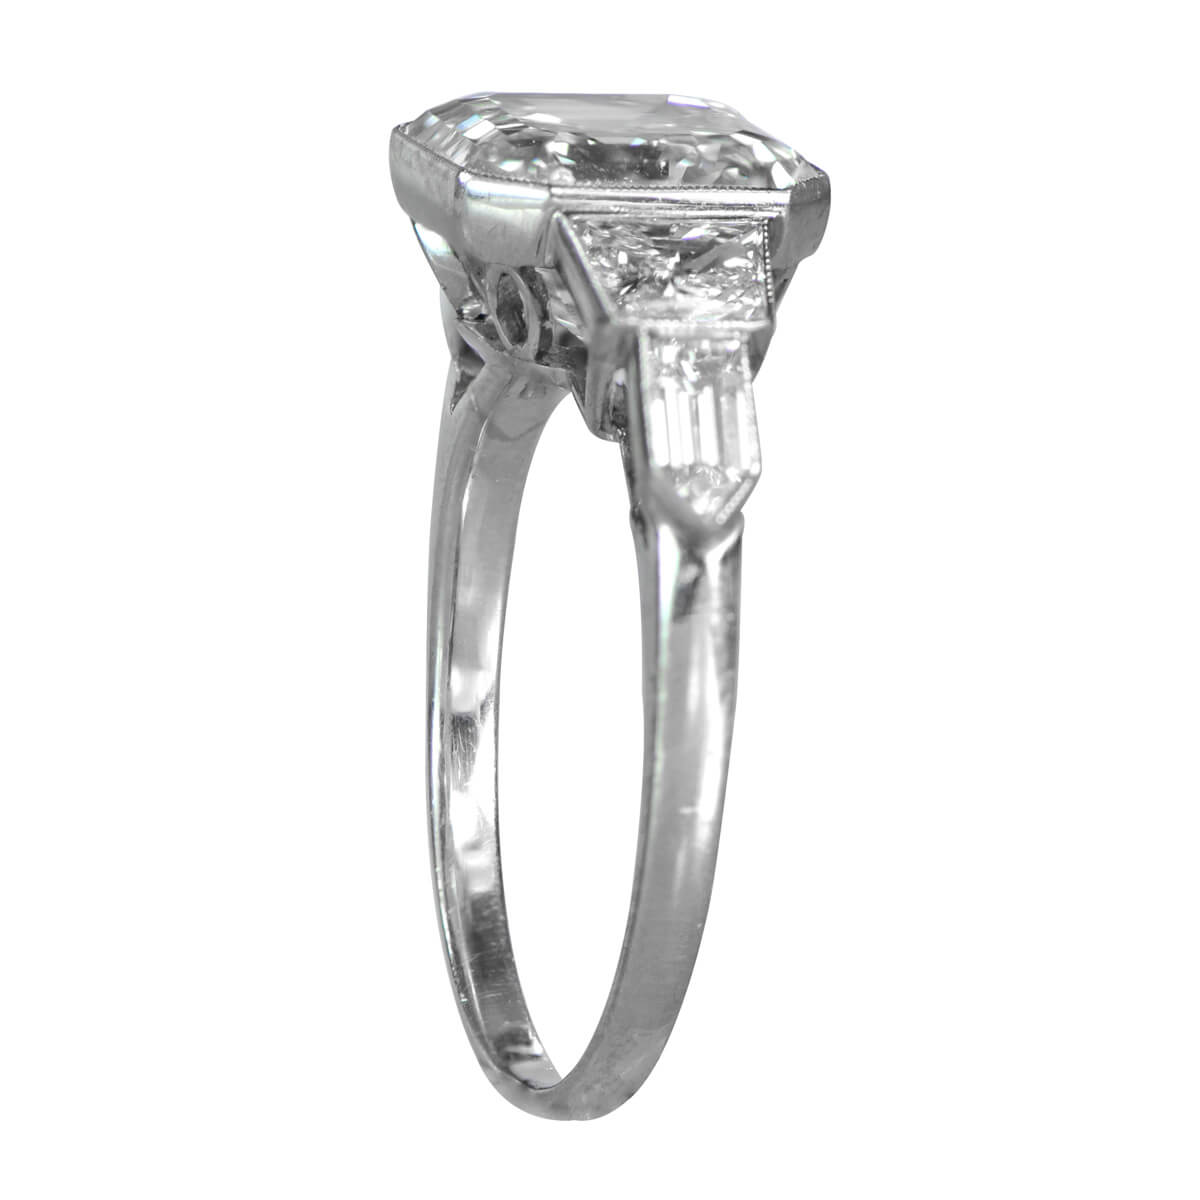 split kaplan white asscher halo shank claw arthur platinum engagement diamond cut products ring gold